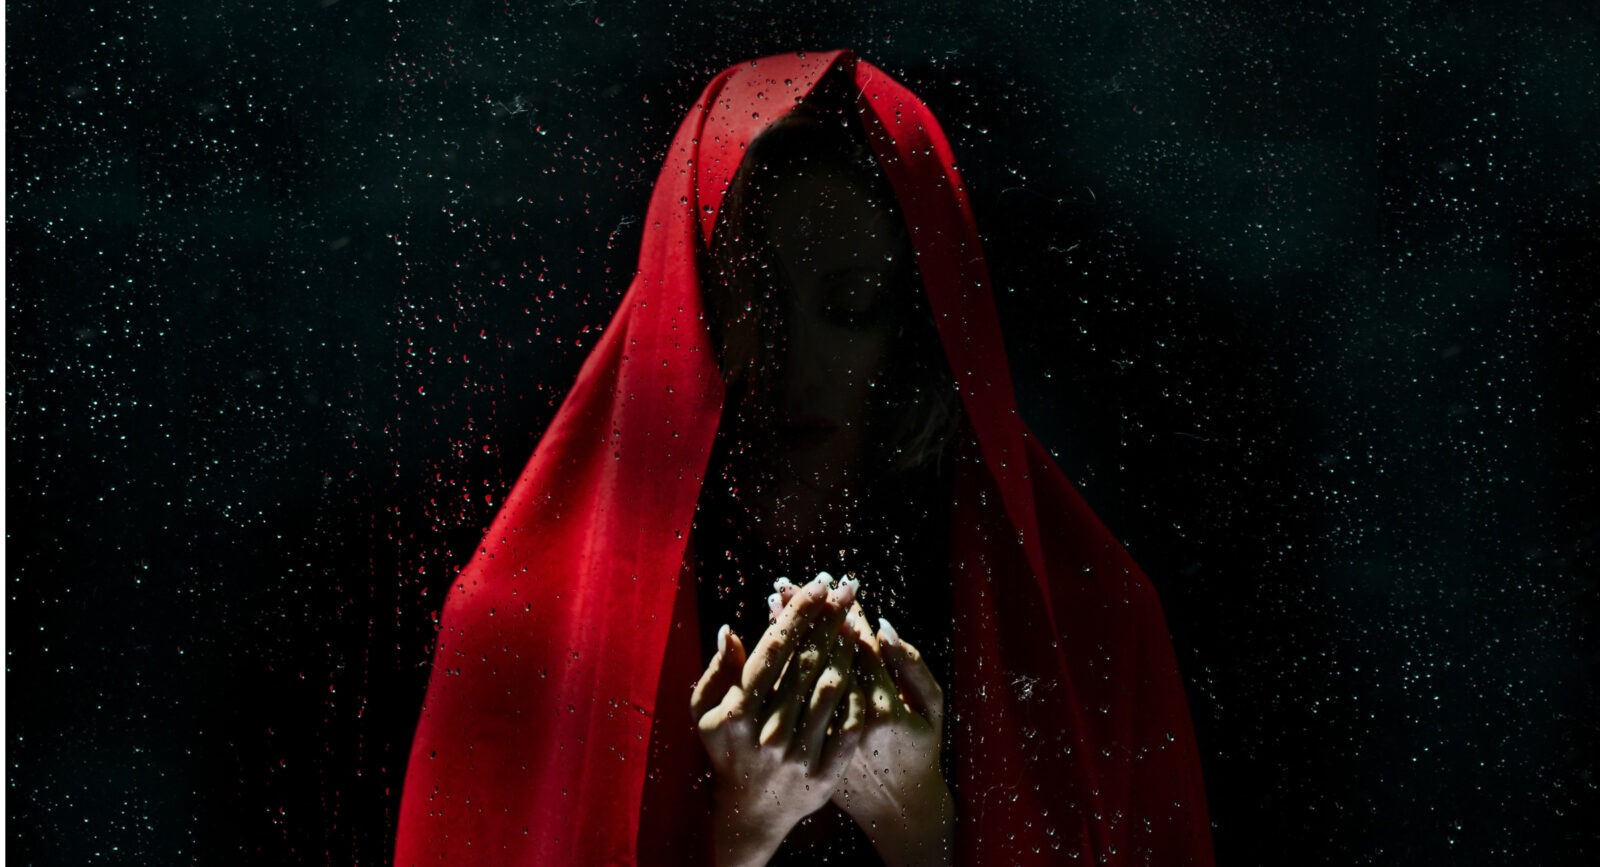 red cloaked figure